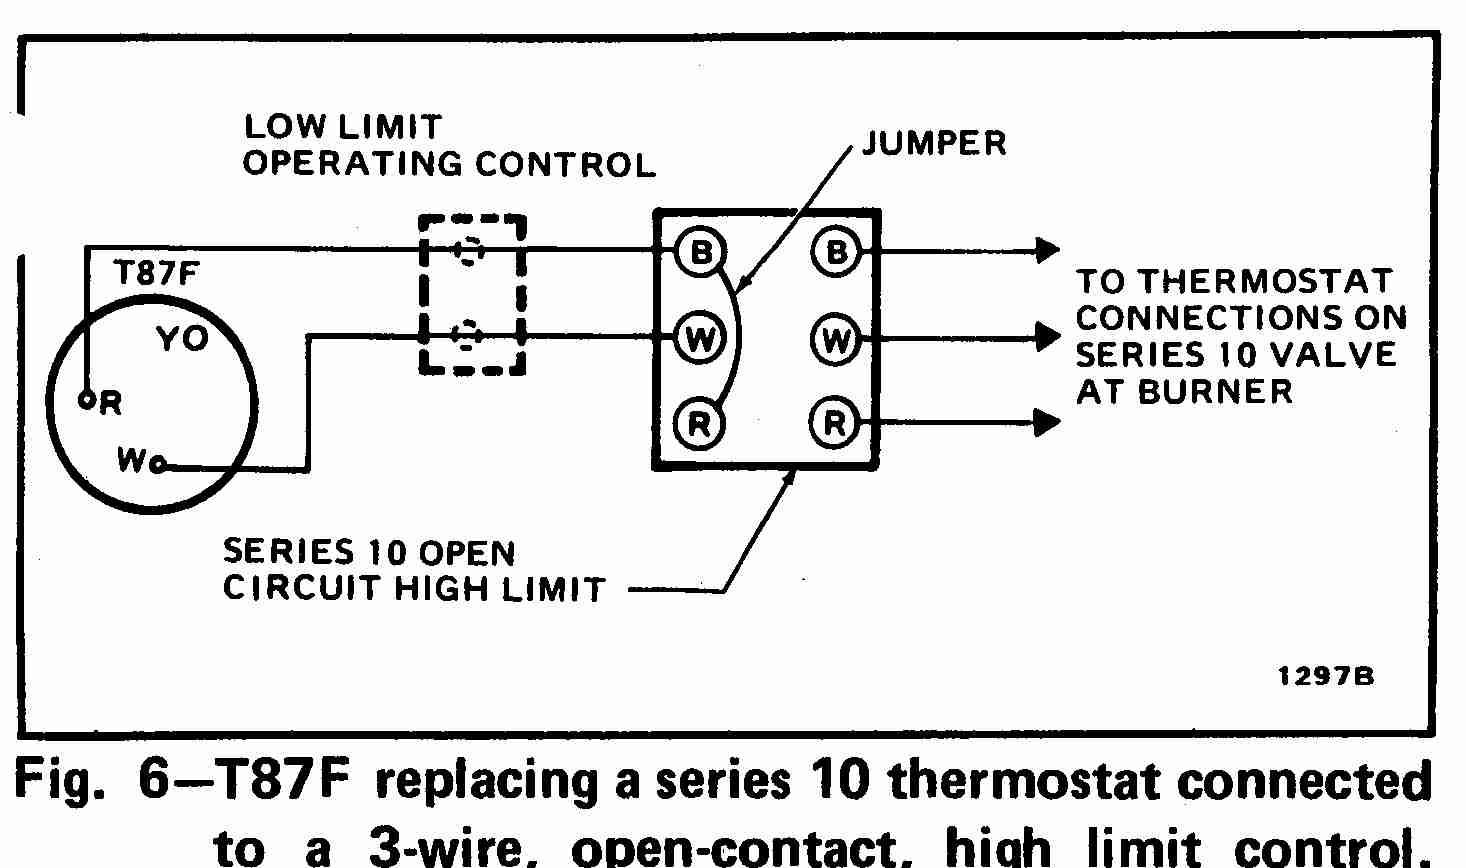 room thermostat wiring diagrams for hvac systems wiring diagram for dimmer 3 wire high limit honeywell t87f thermostat wiring diagram